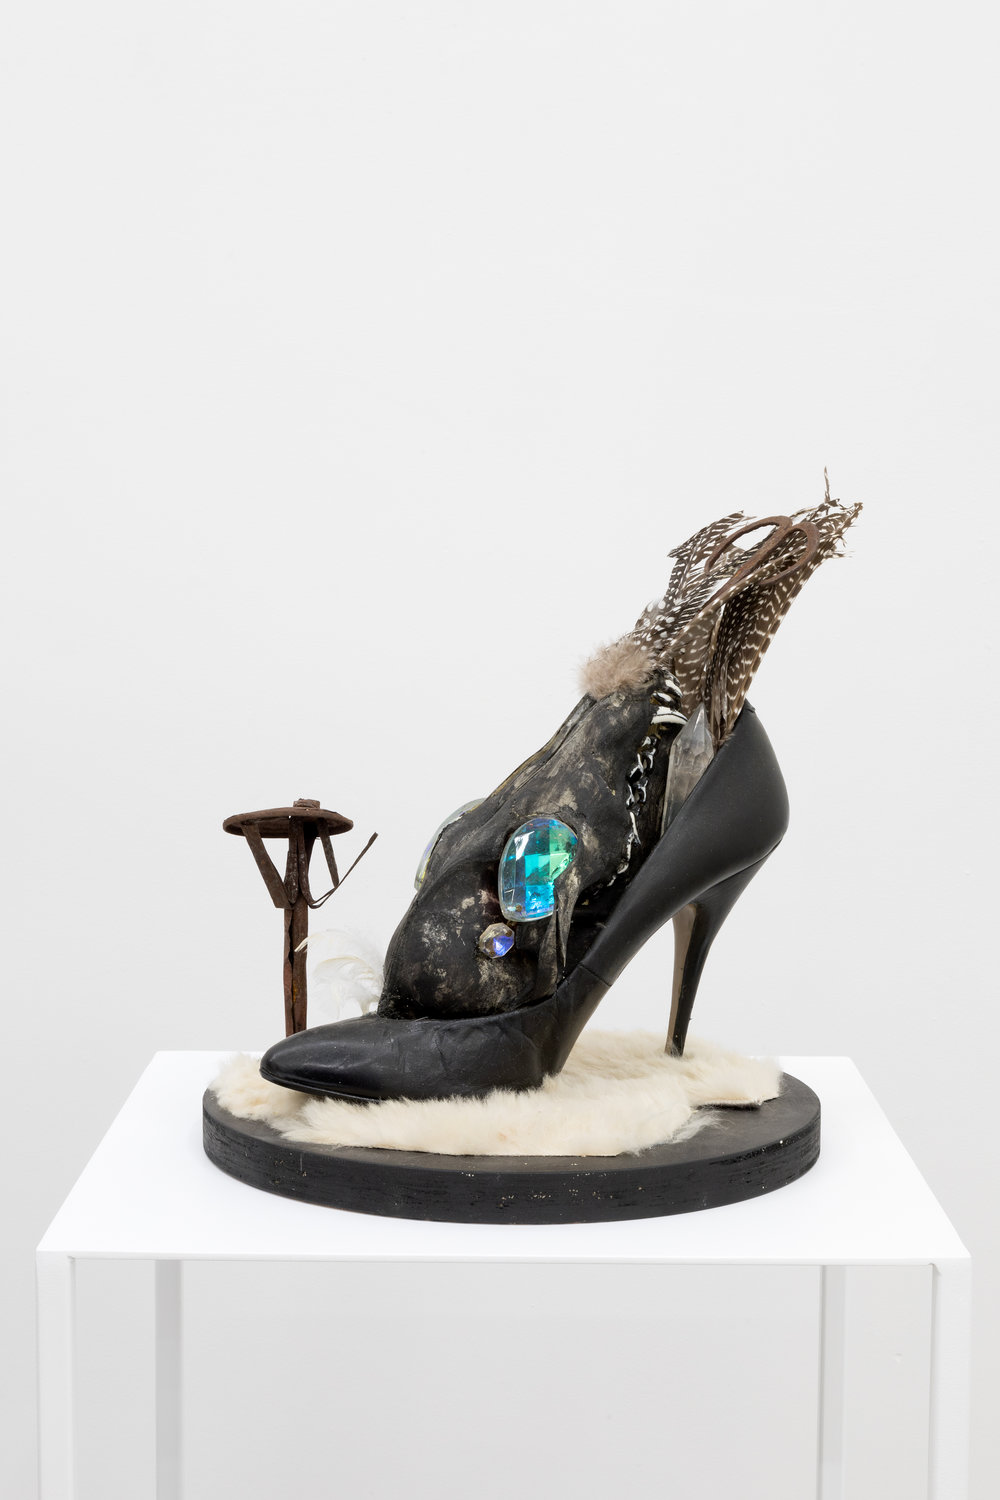 Genesis BREYER P-ORRIDGE,  Shoe Horn #6 , 2015, Horn, dominatrix shoe, Nepalese fabric-printing square, skull, feathers, Nepalese candle, gemstones, fur, 9 x 9 x 8 in